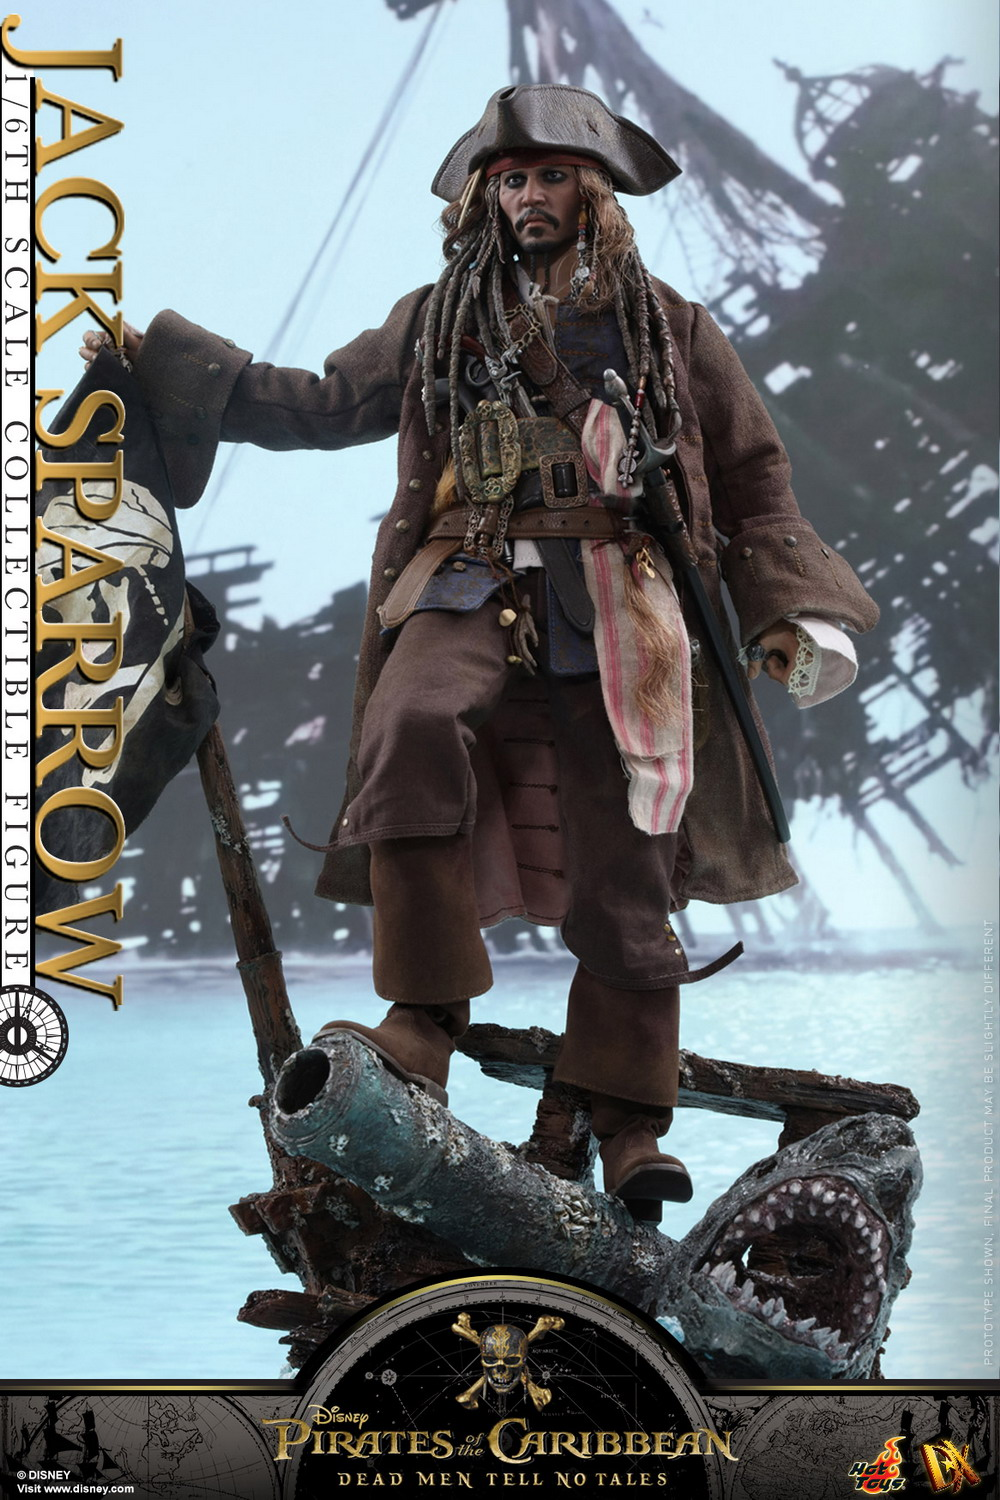 Hot Toys Captain Jack Sparrow POTC DX15 Black Pearl in Bottle loose 1//6th scale